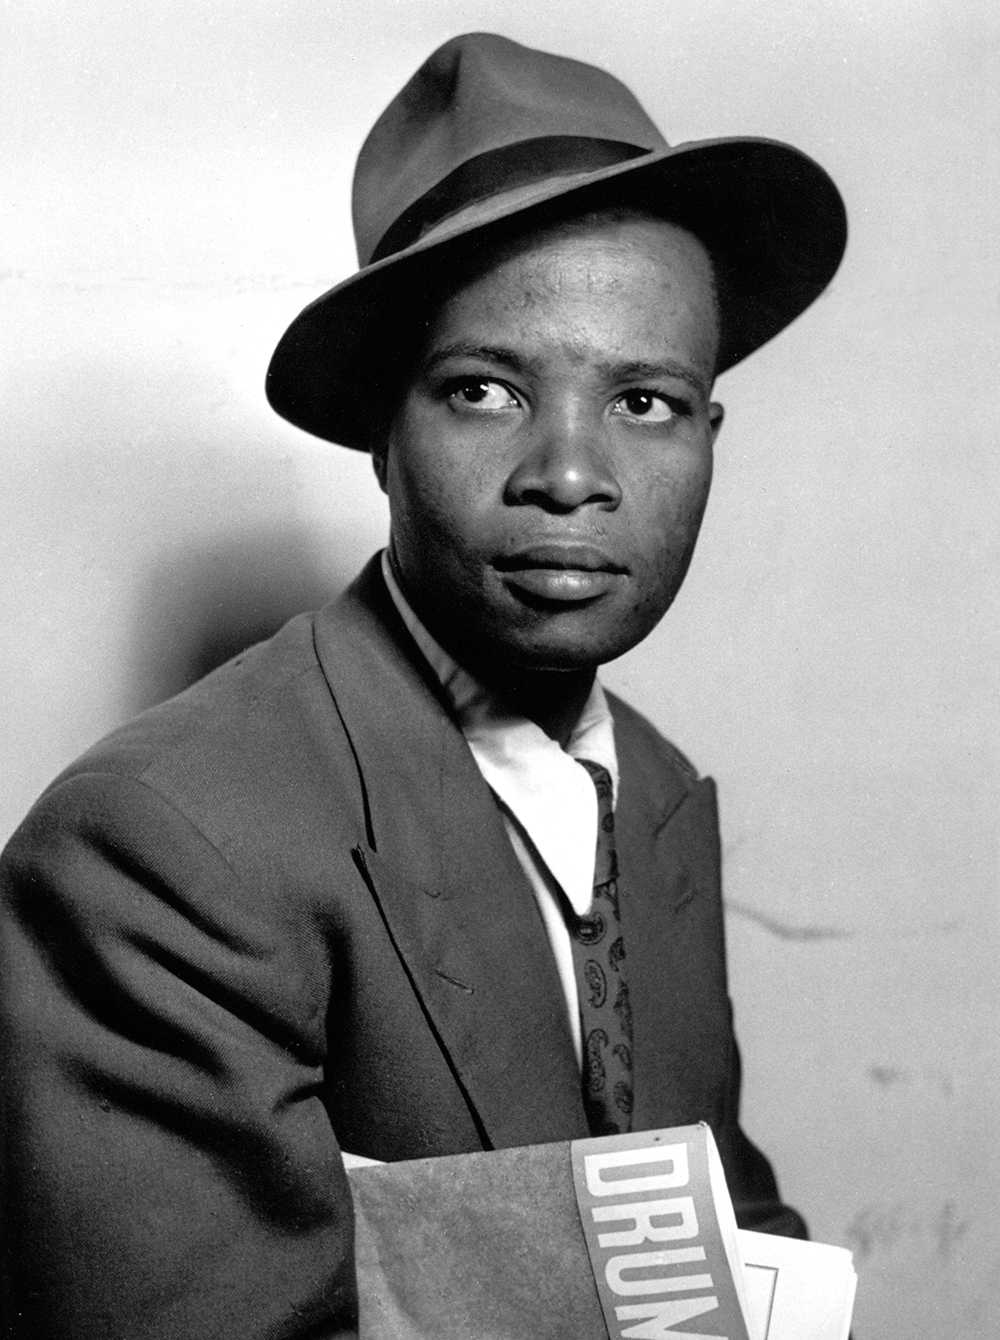 Henry Nxumalo as Mr. Drum, 1951. Photograph by Jürgen Schadeberg, jurgenschadeberg . com.